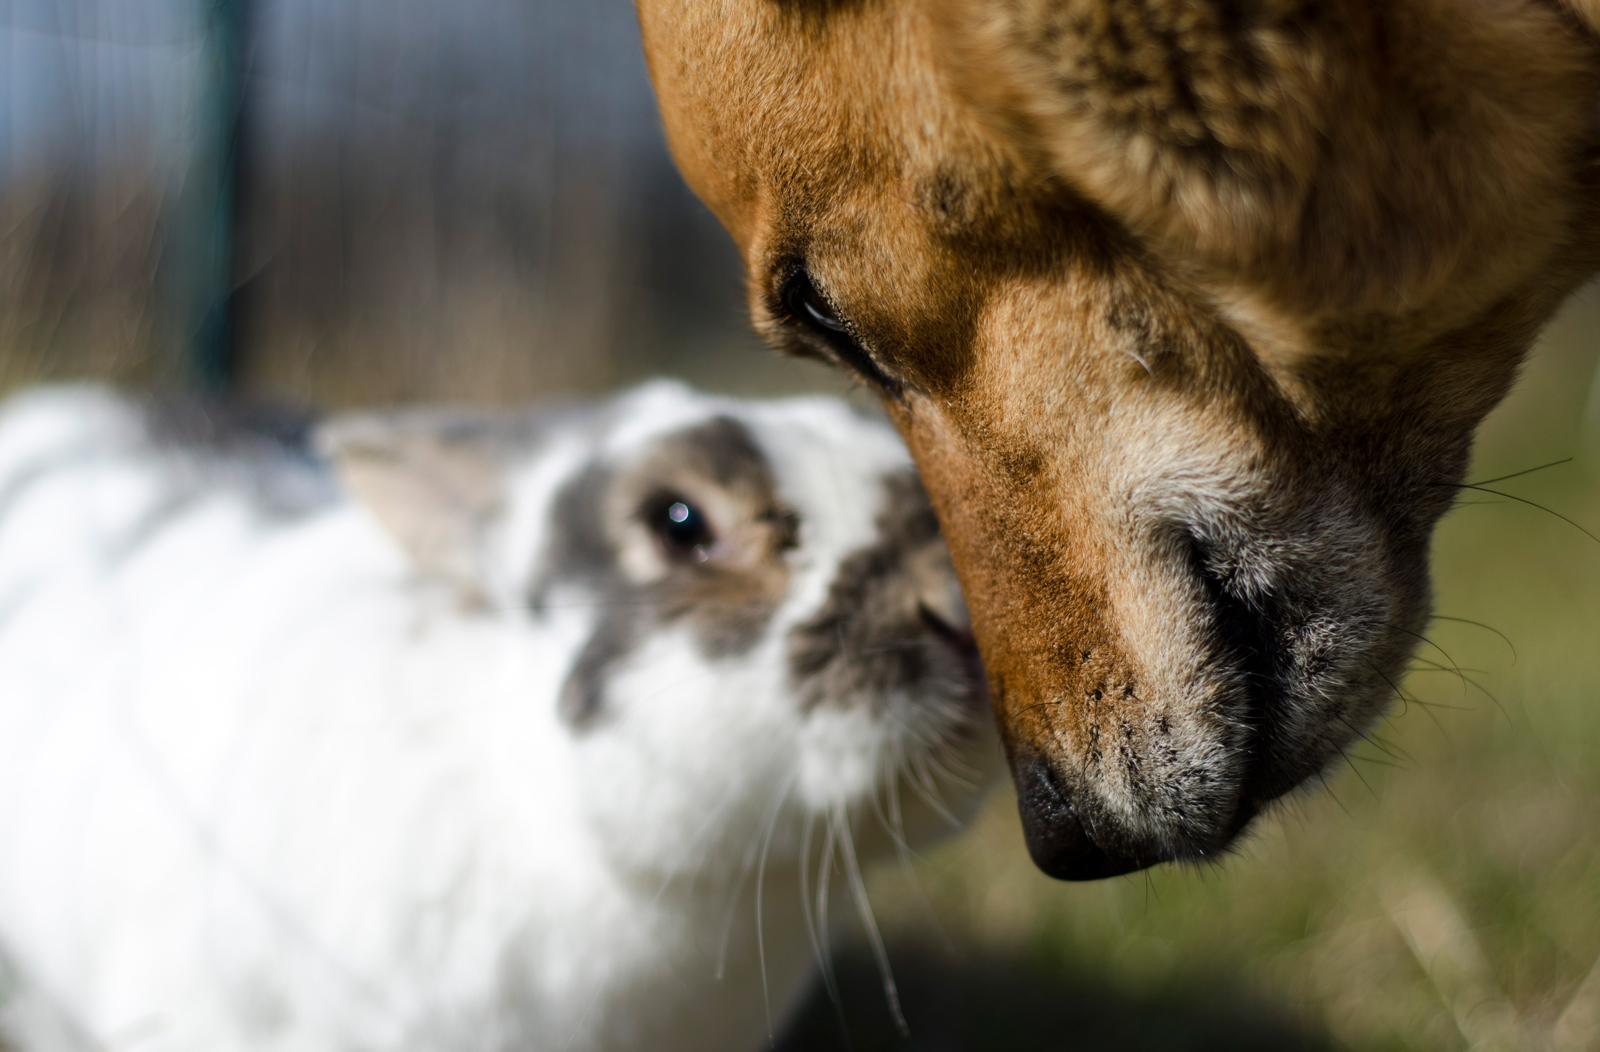 pet animal rabbit bunny dog friends wildlife